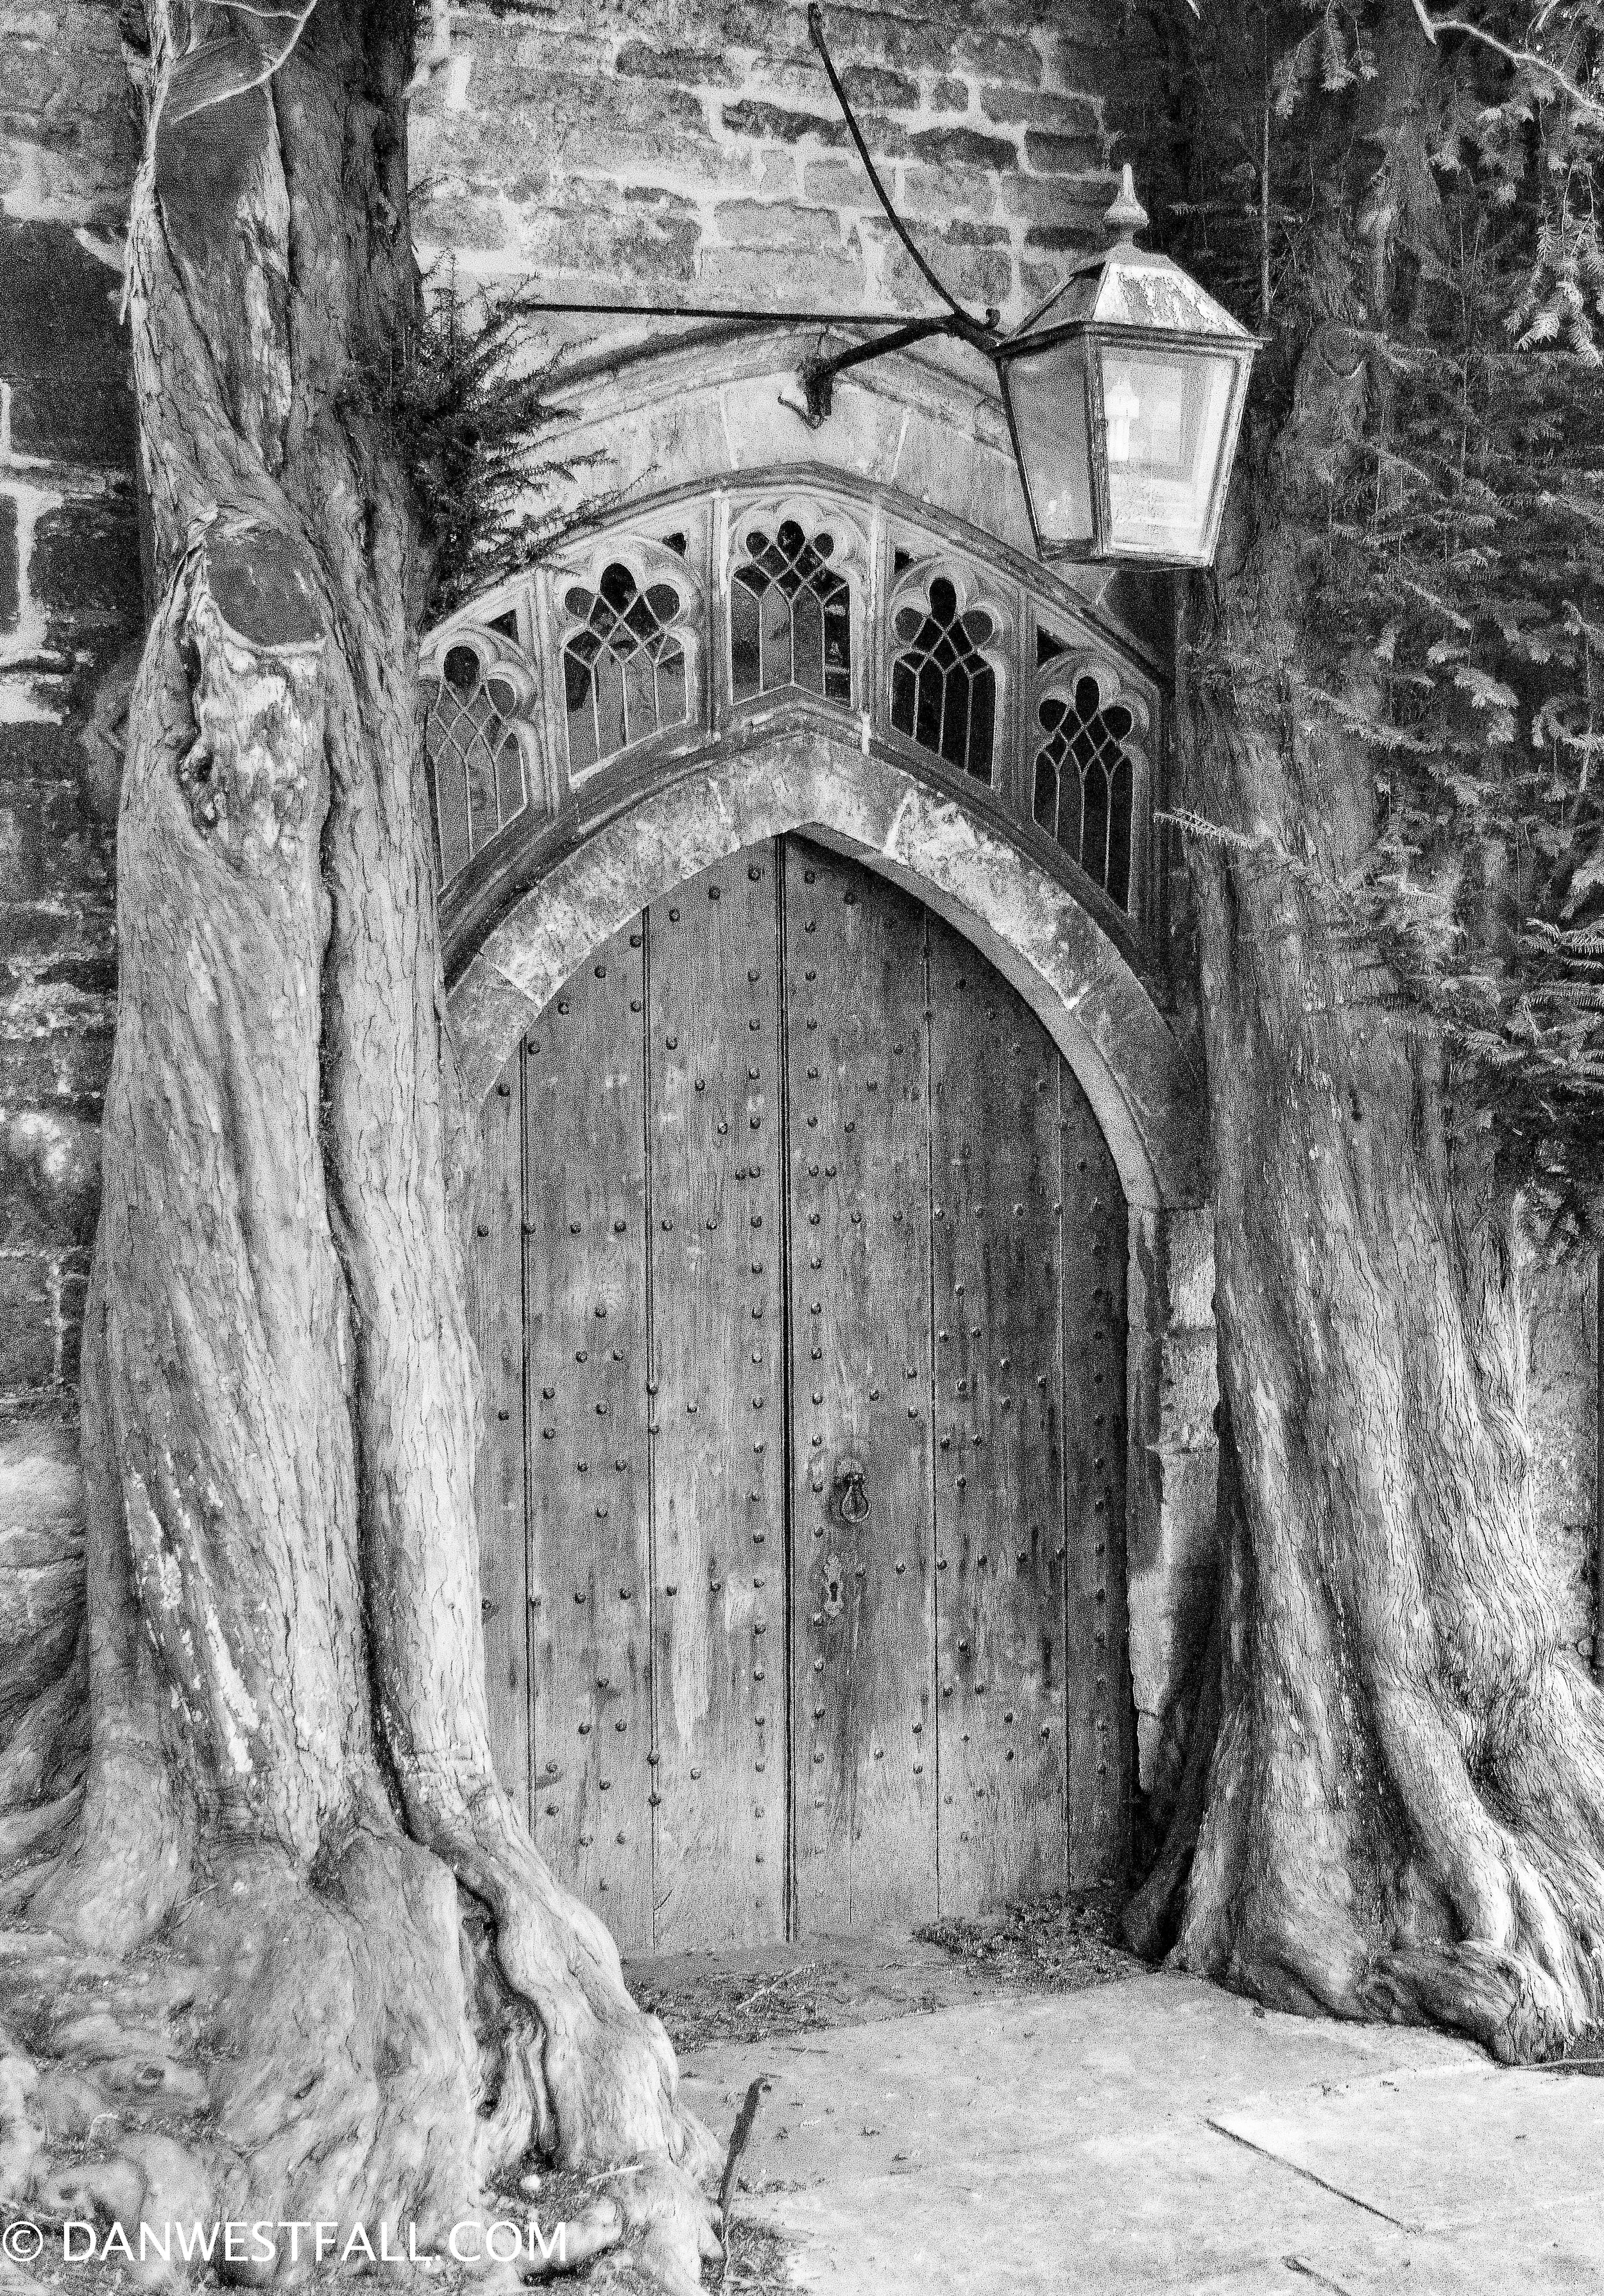 Yew Trees with church door. England #0721